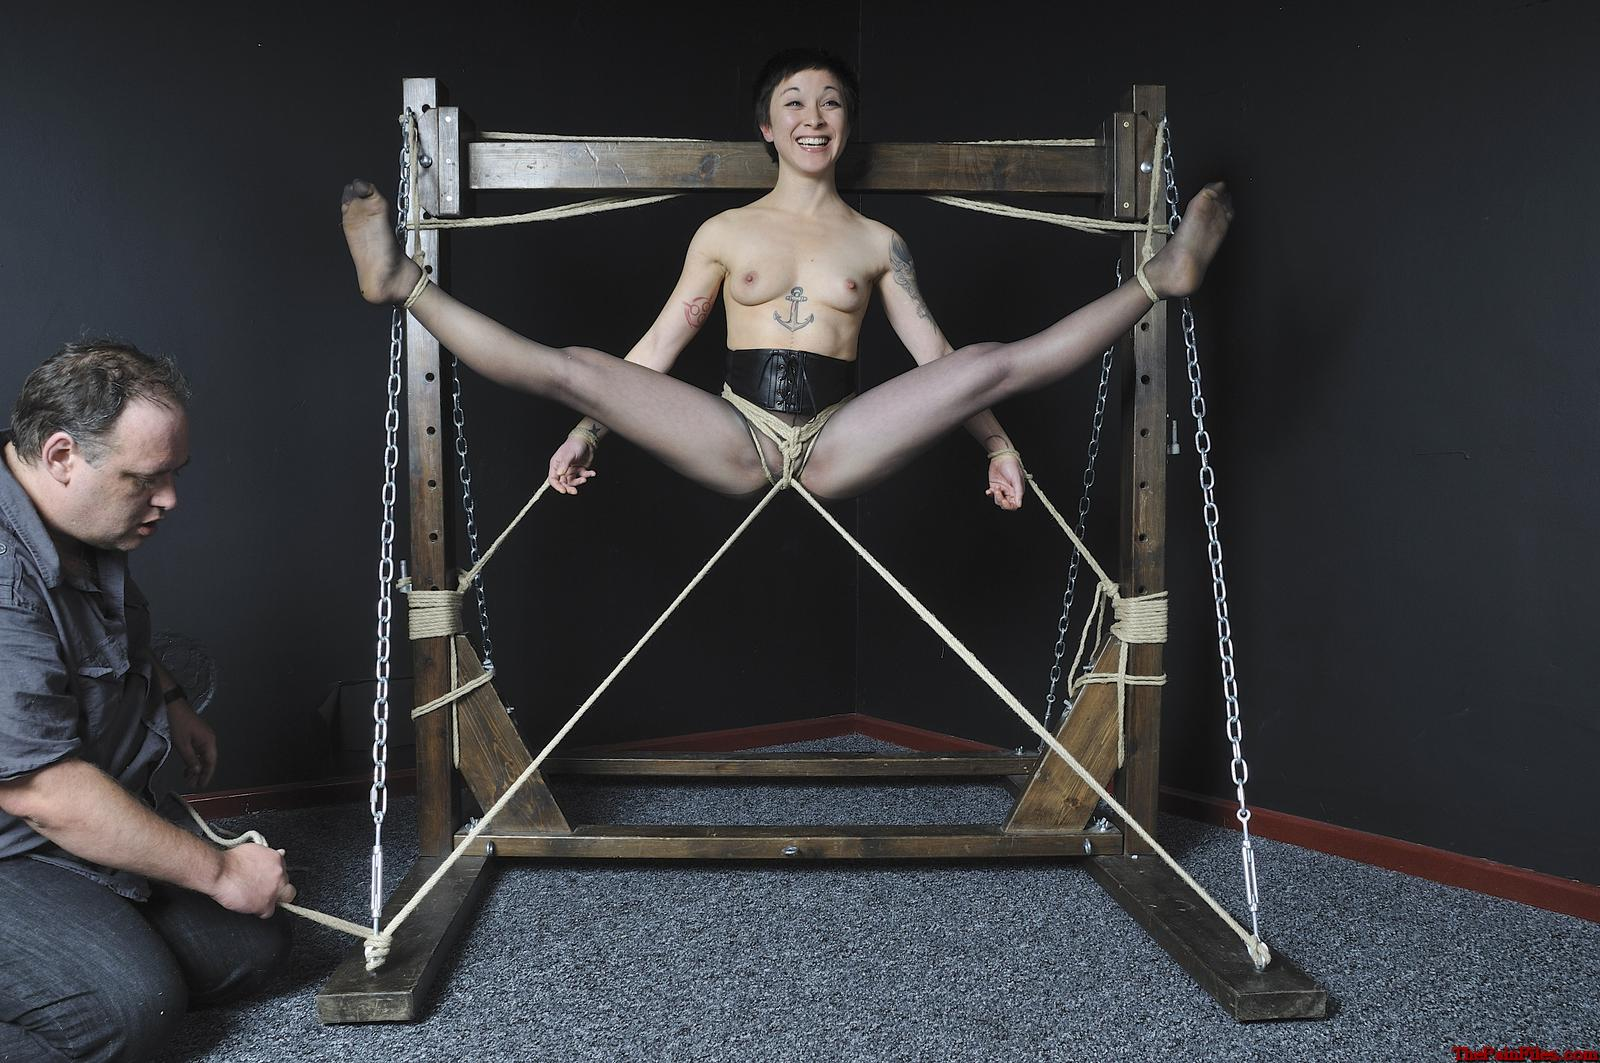 Agree with Gagged hogtied suspended asians that